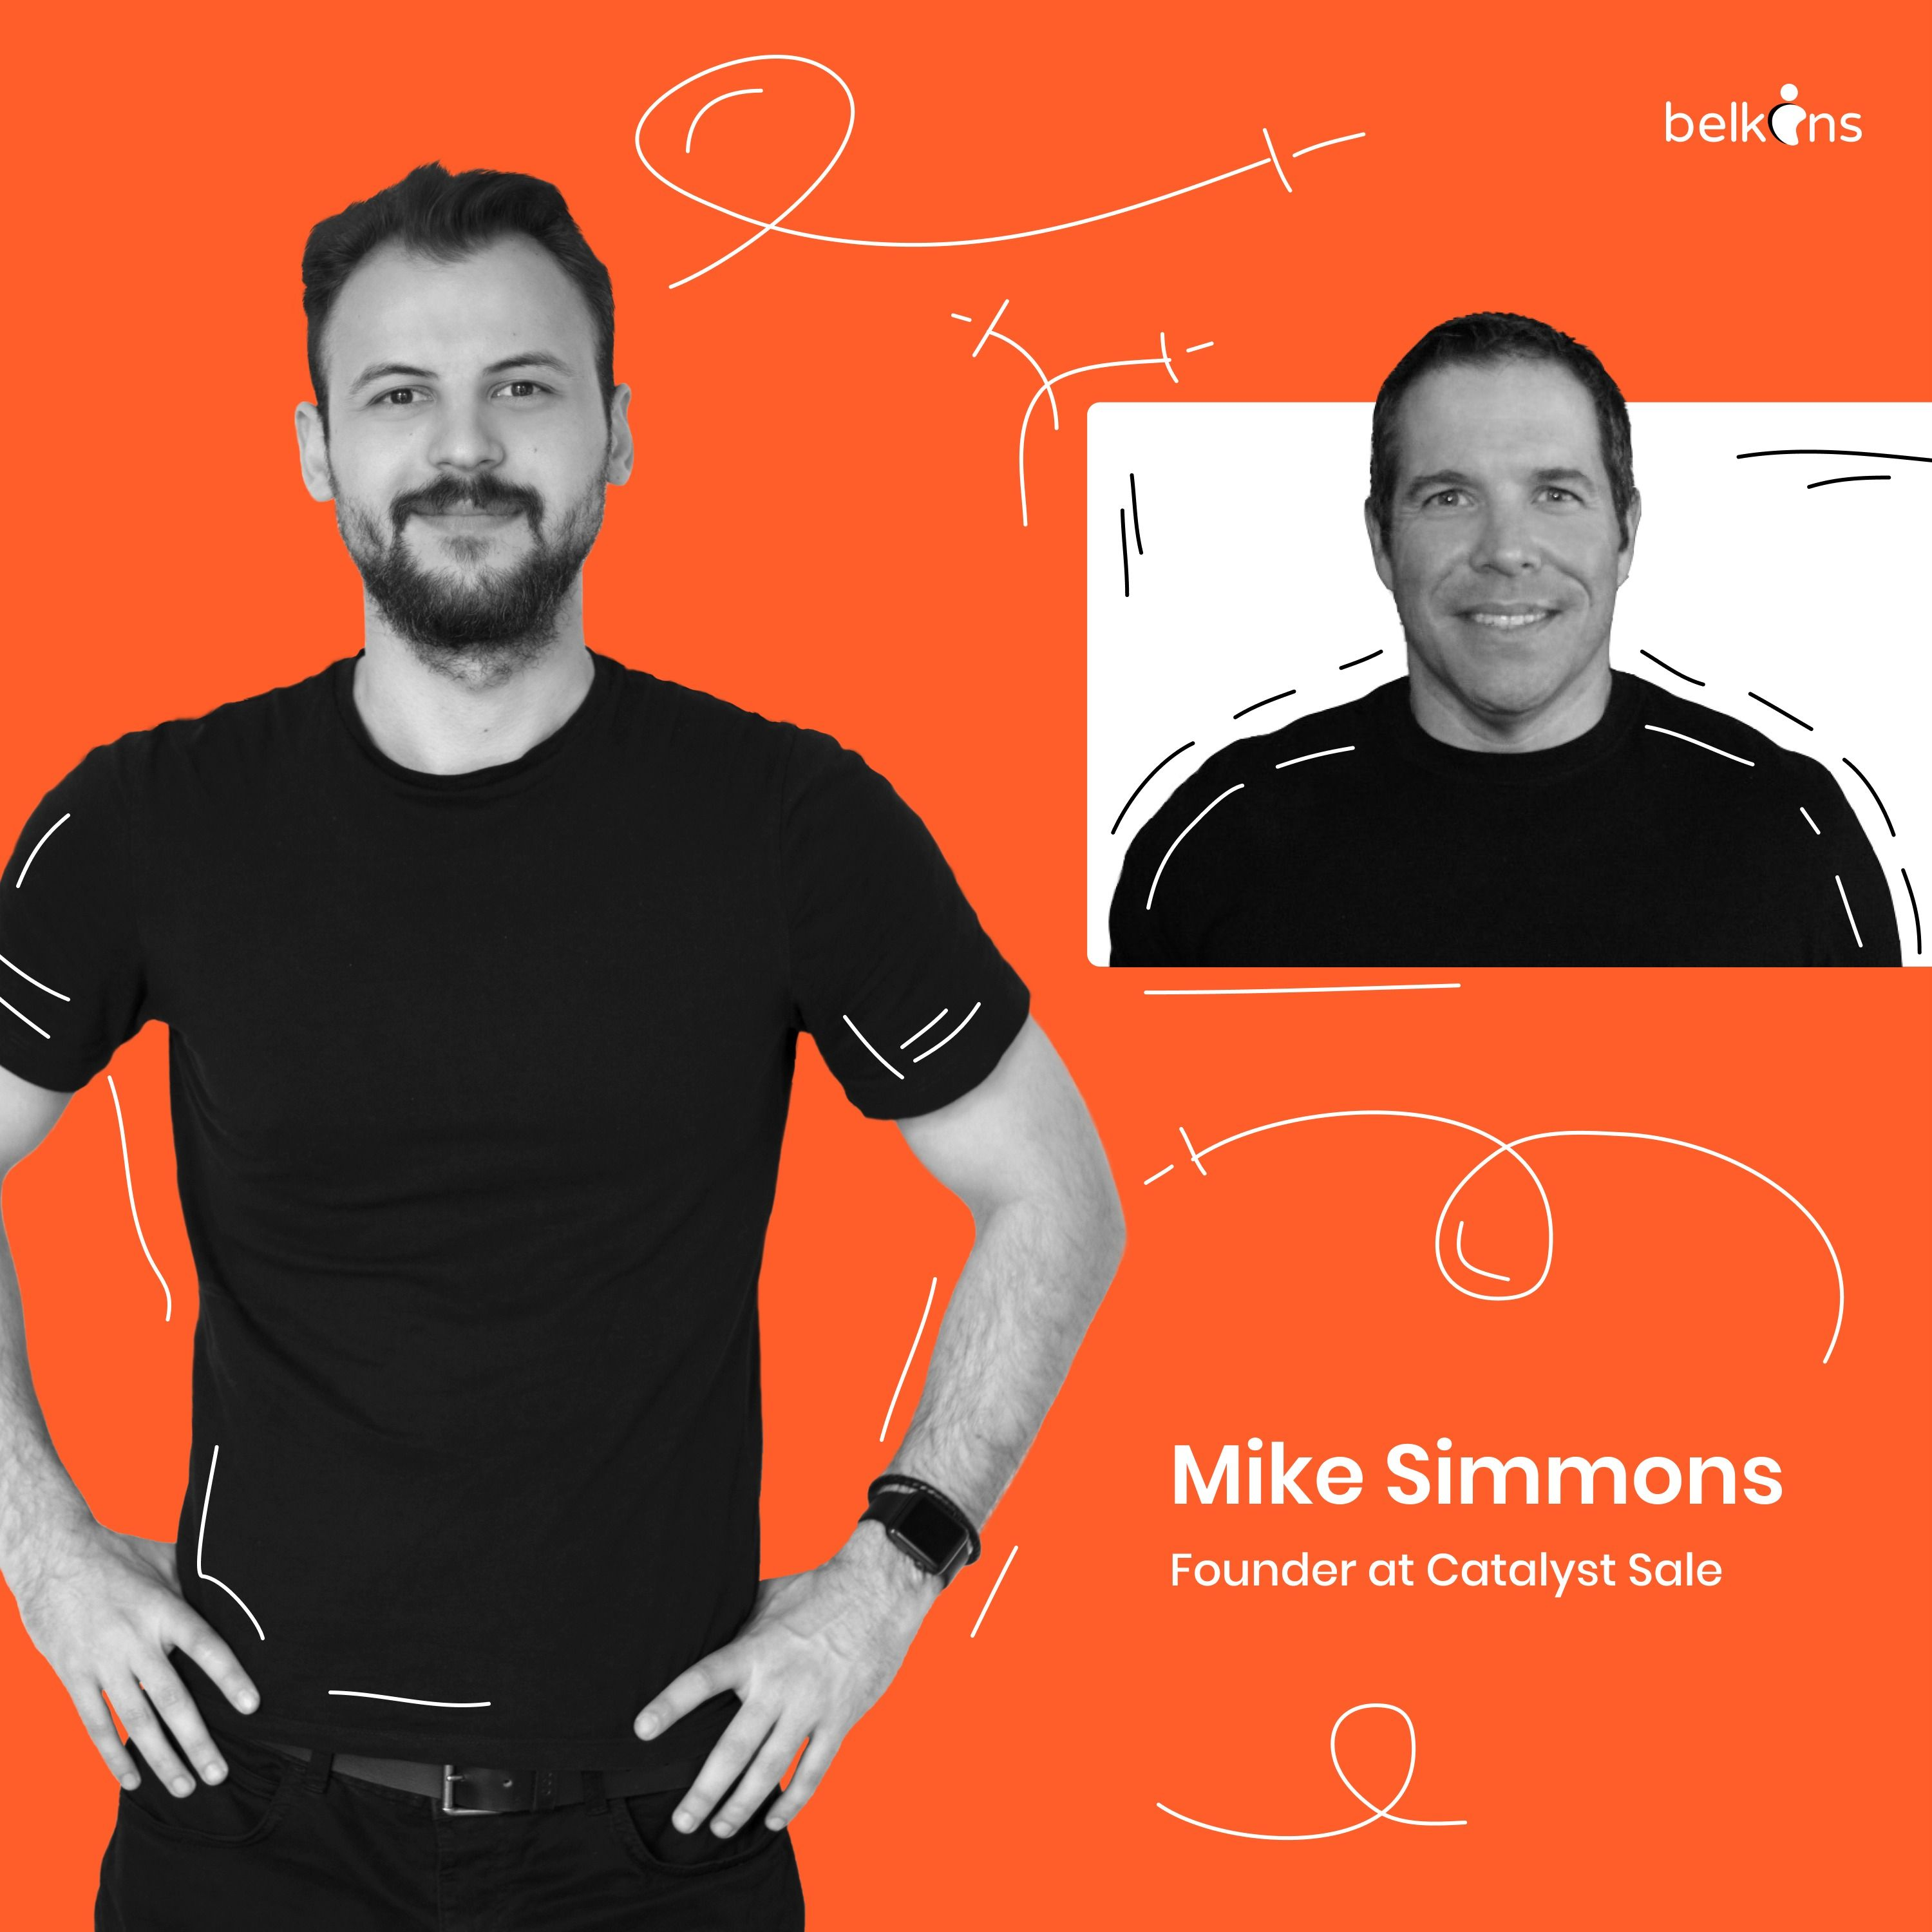 Interview with Mike Simmons, a founder of Catalyst Sale.